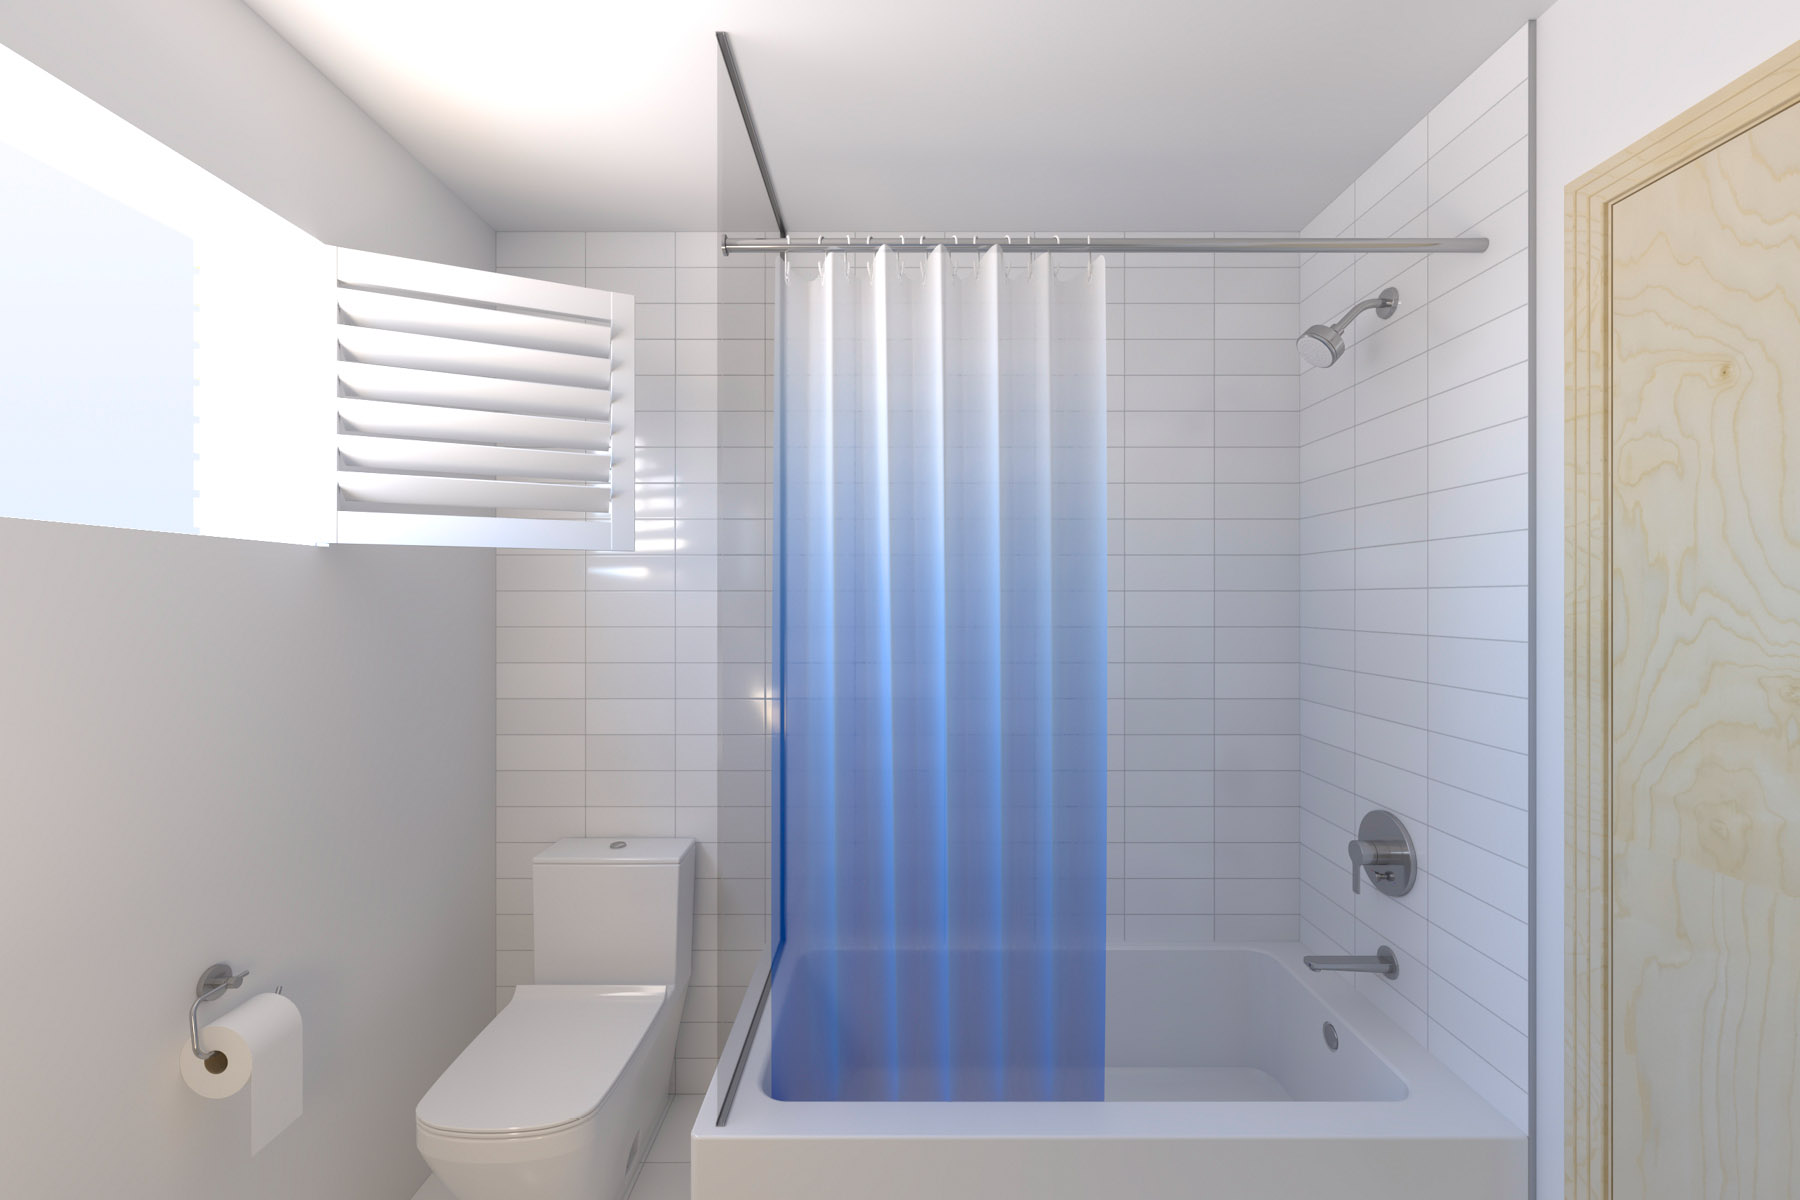 Visualisation of the proposed bathroom